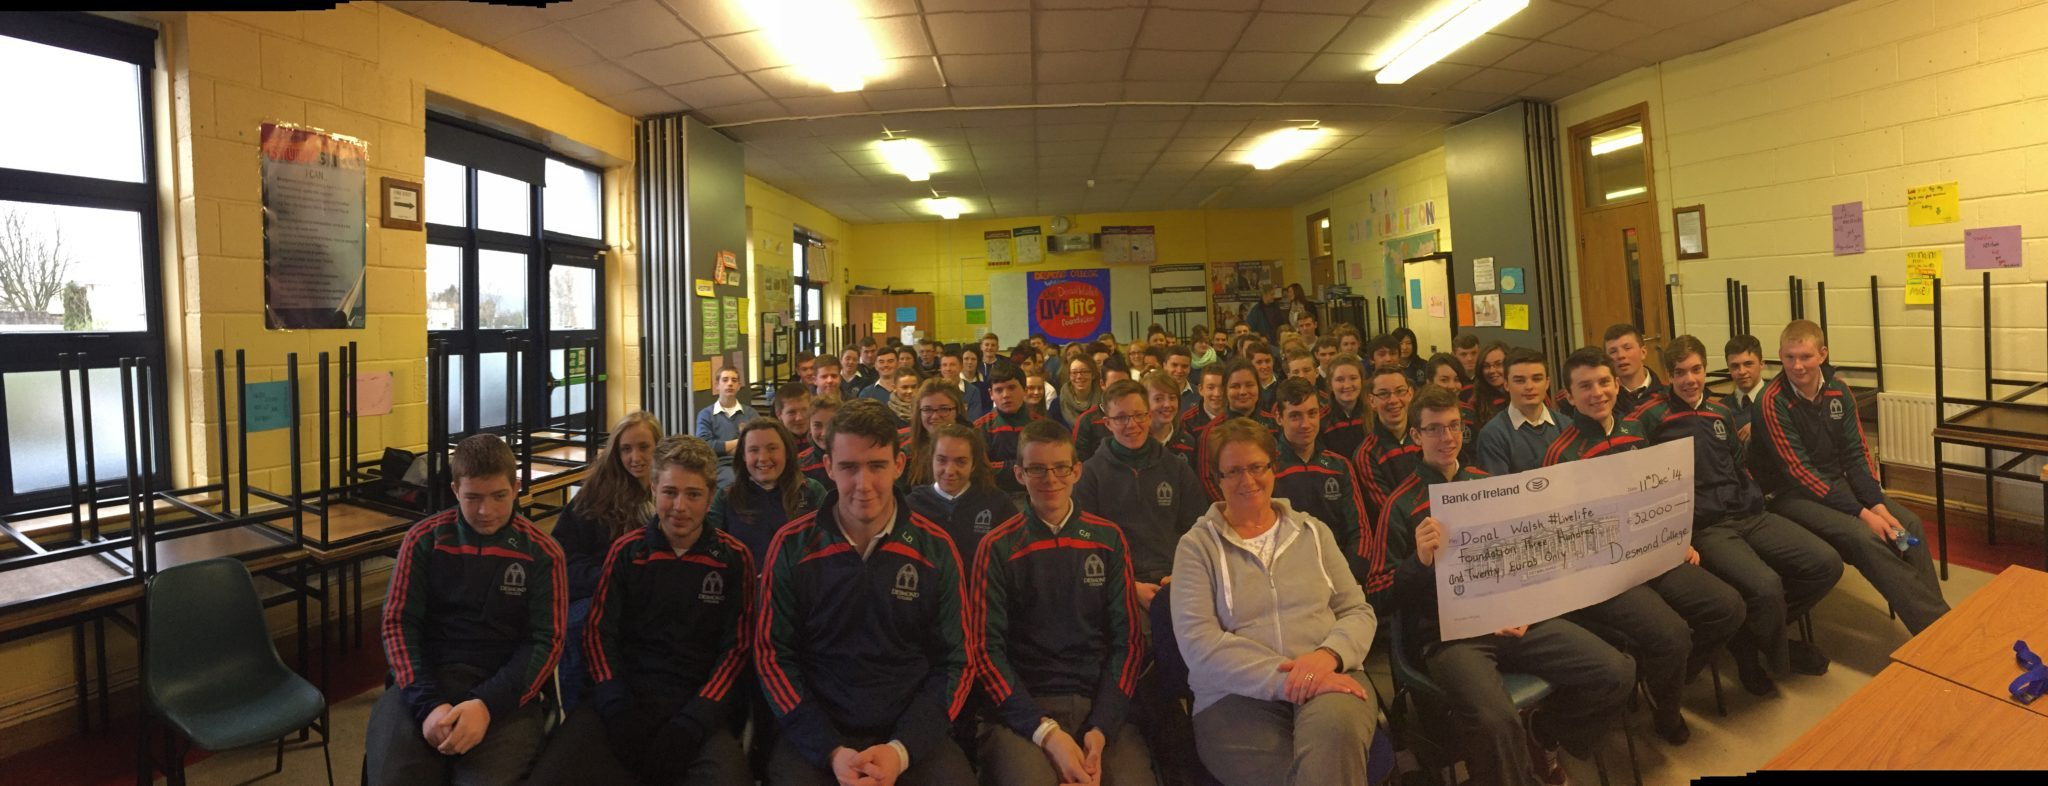 Donal Walsh Anti-Suicide Talk by his mother, Elma Walsh on 11th December 2014 at Desmond College : #LiveLife Foundation